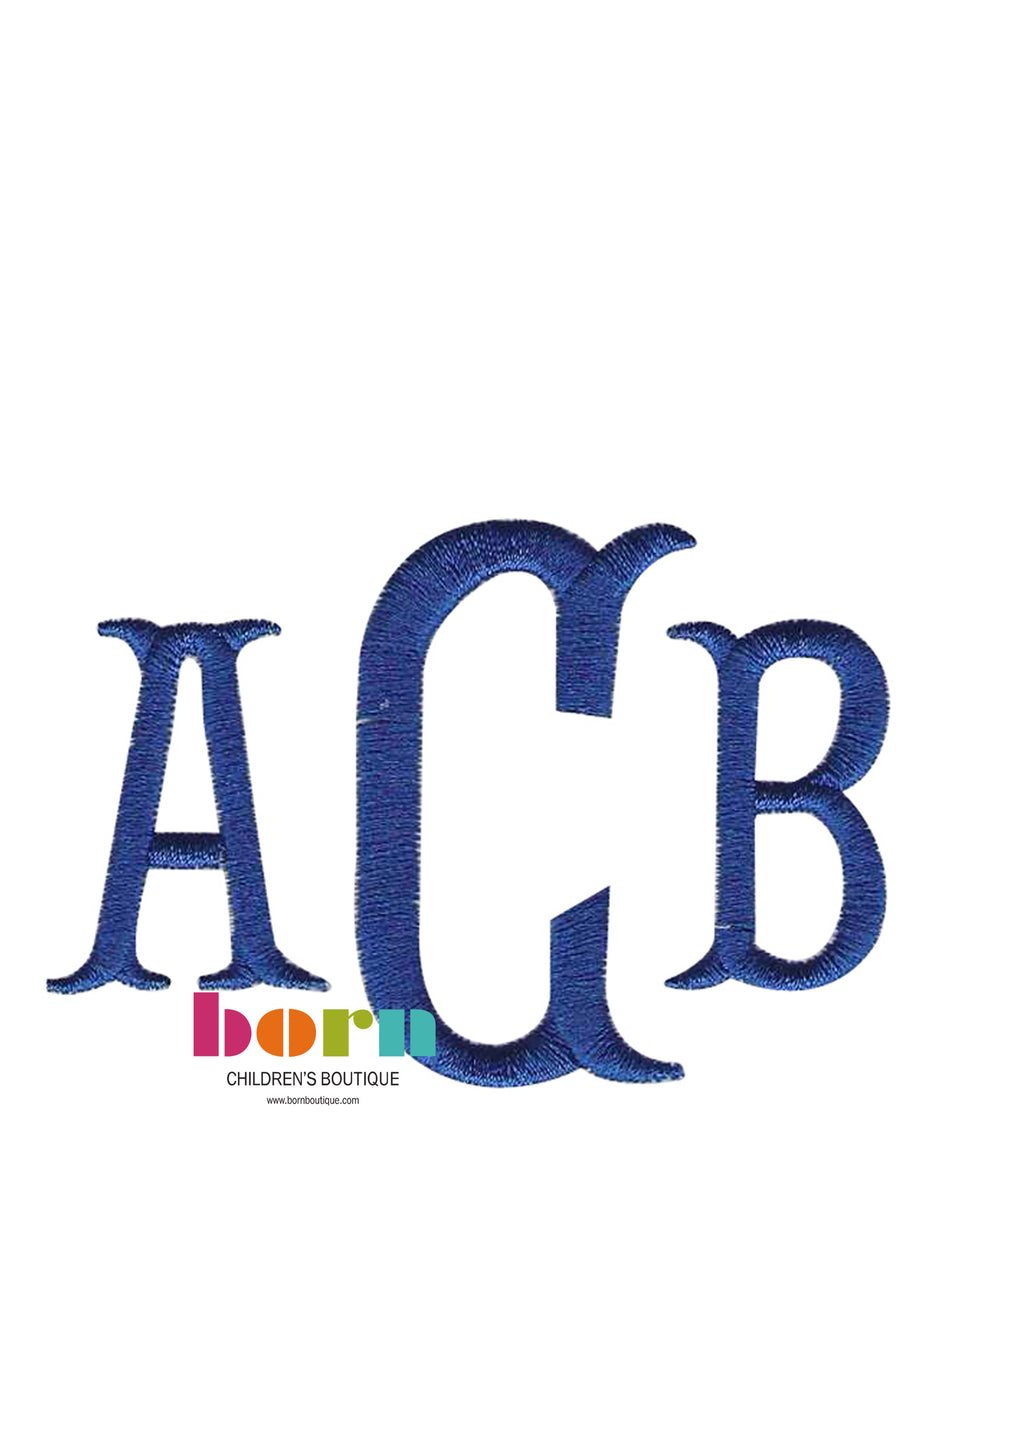 Cotillion Initials - Born Childrens Boutique